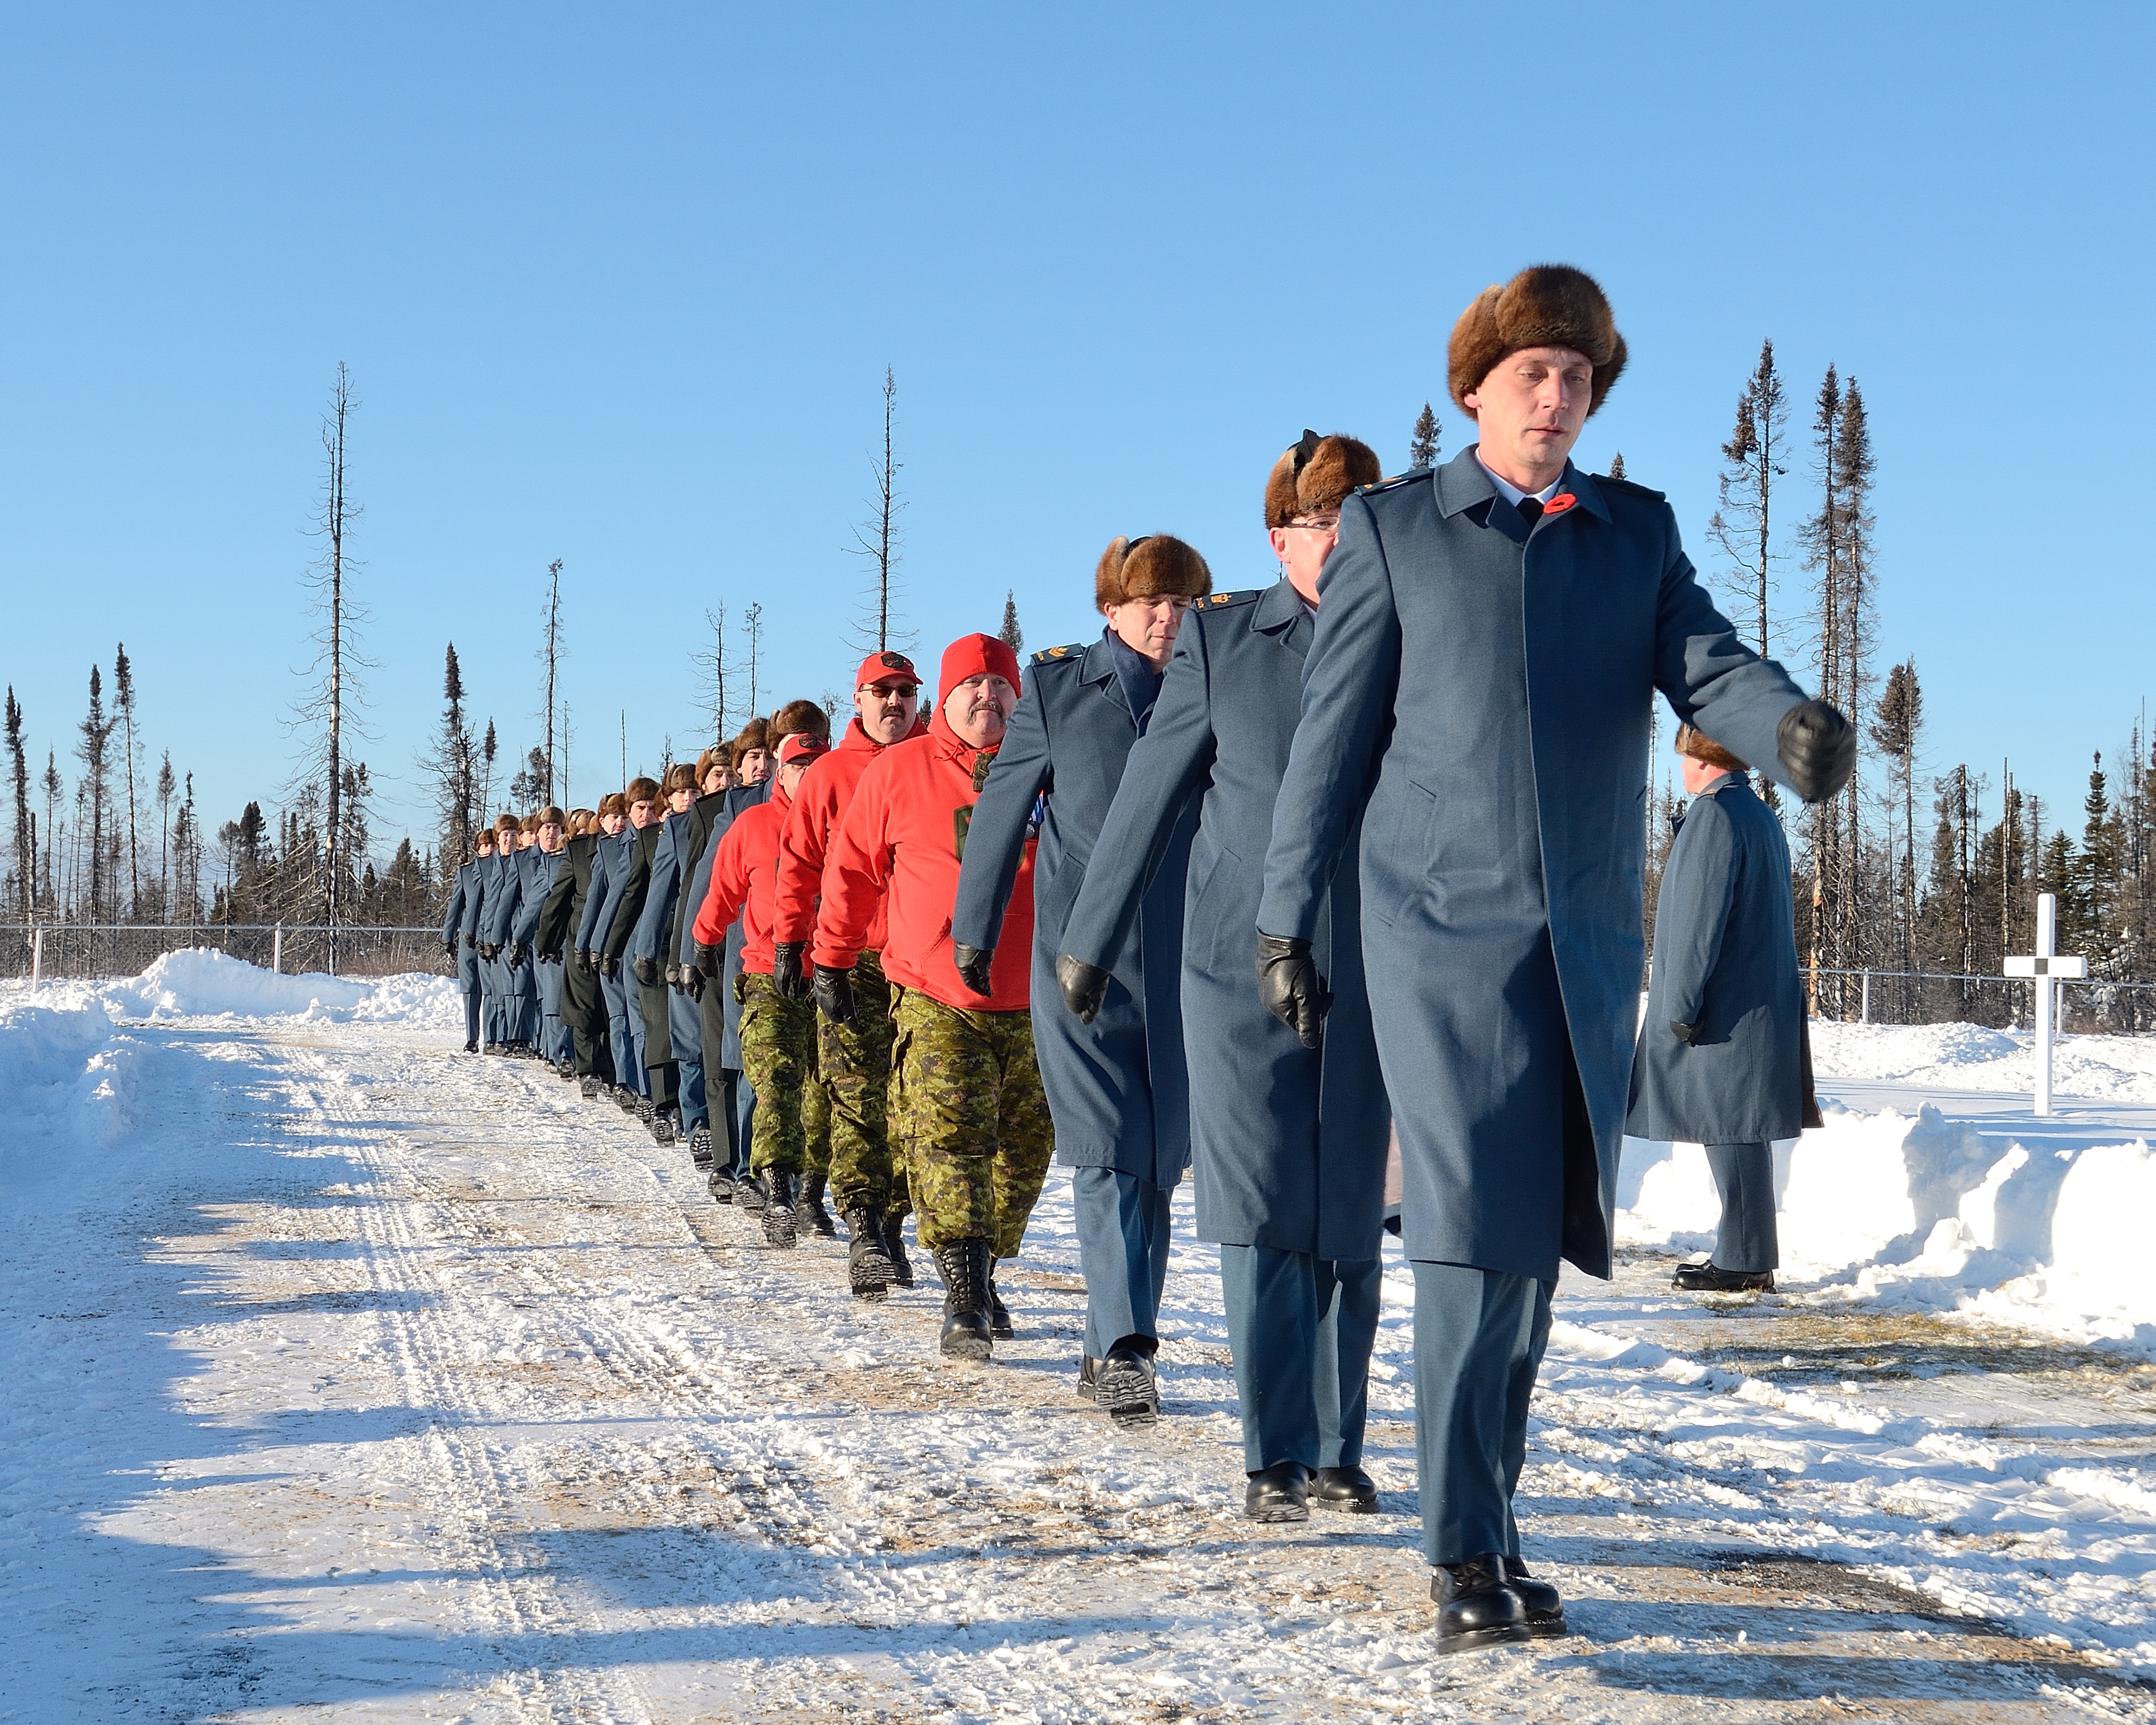 Royal Canadian Air Force members and Canadian Ranger personnel parade in Commonwealth Cemetery during the 5 Wing/Canadian Forces Base Goose Bay, Newfoundland and Labrador, Remembrance Day ceremony on November 11, 2014.